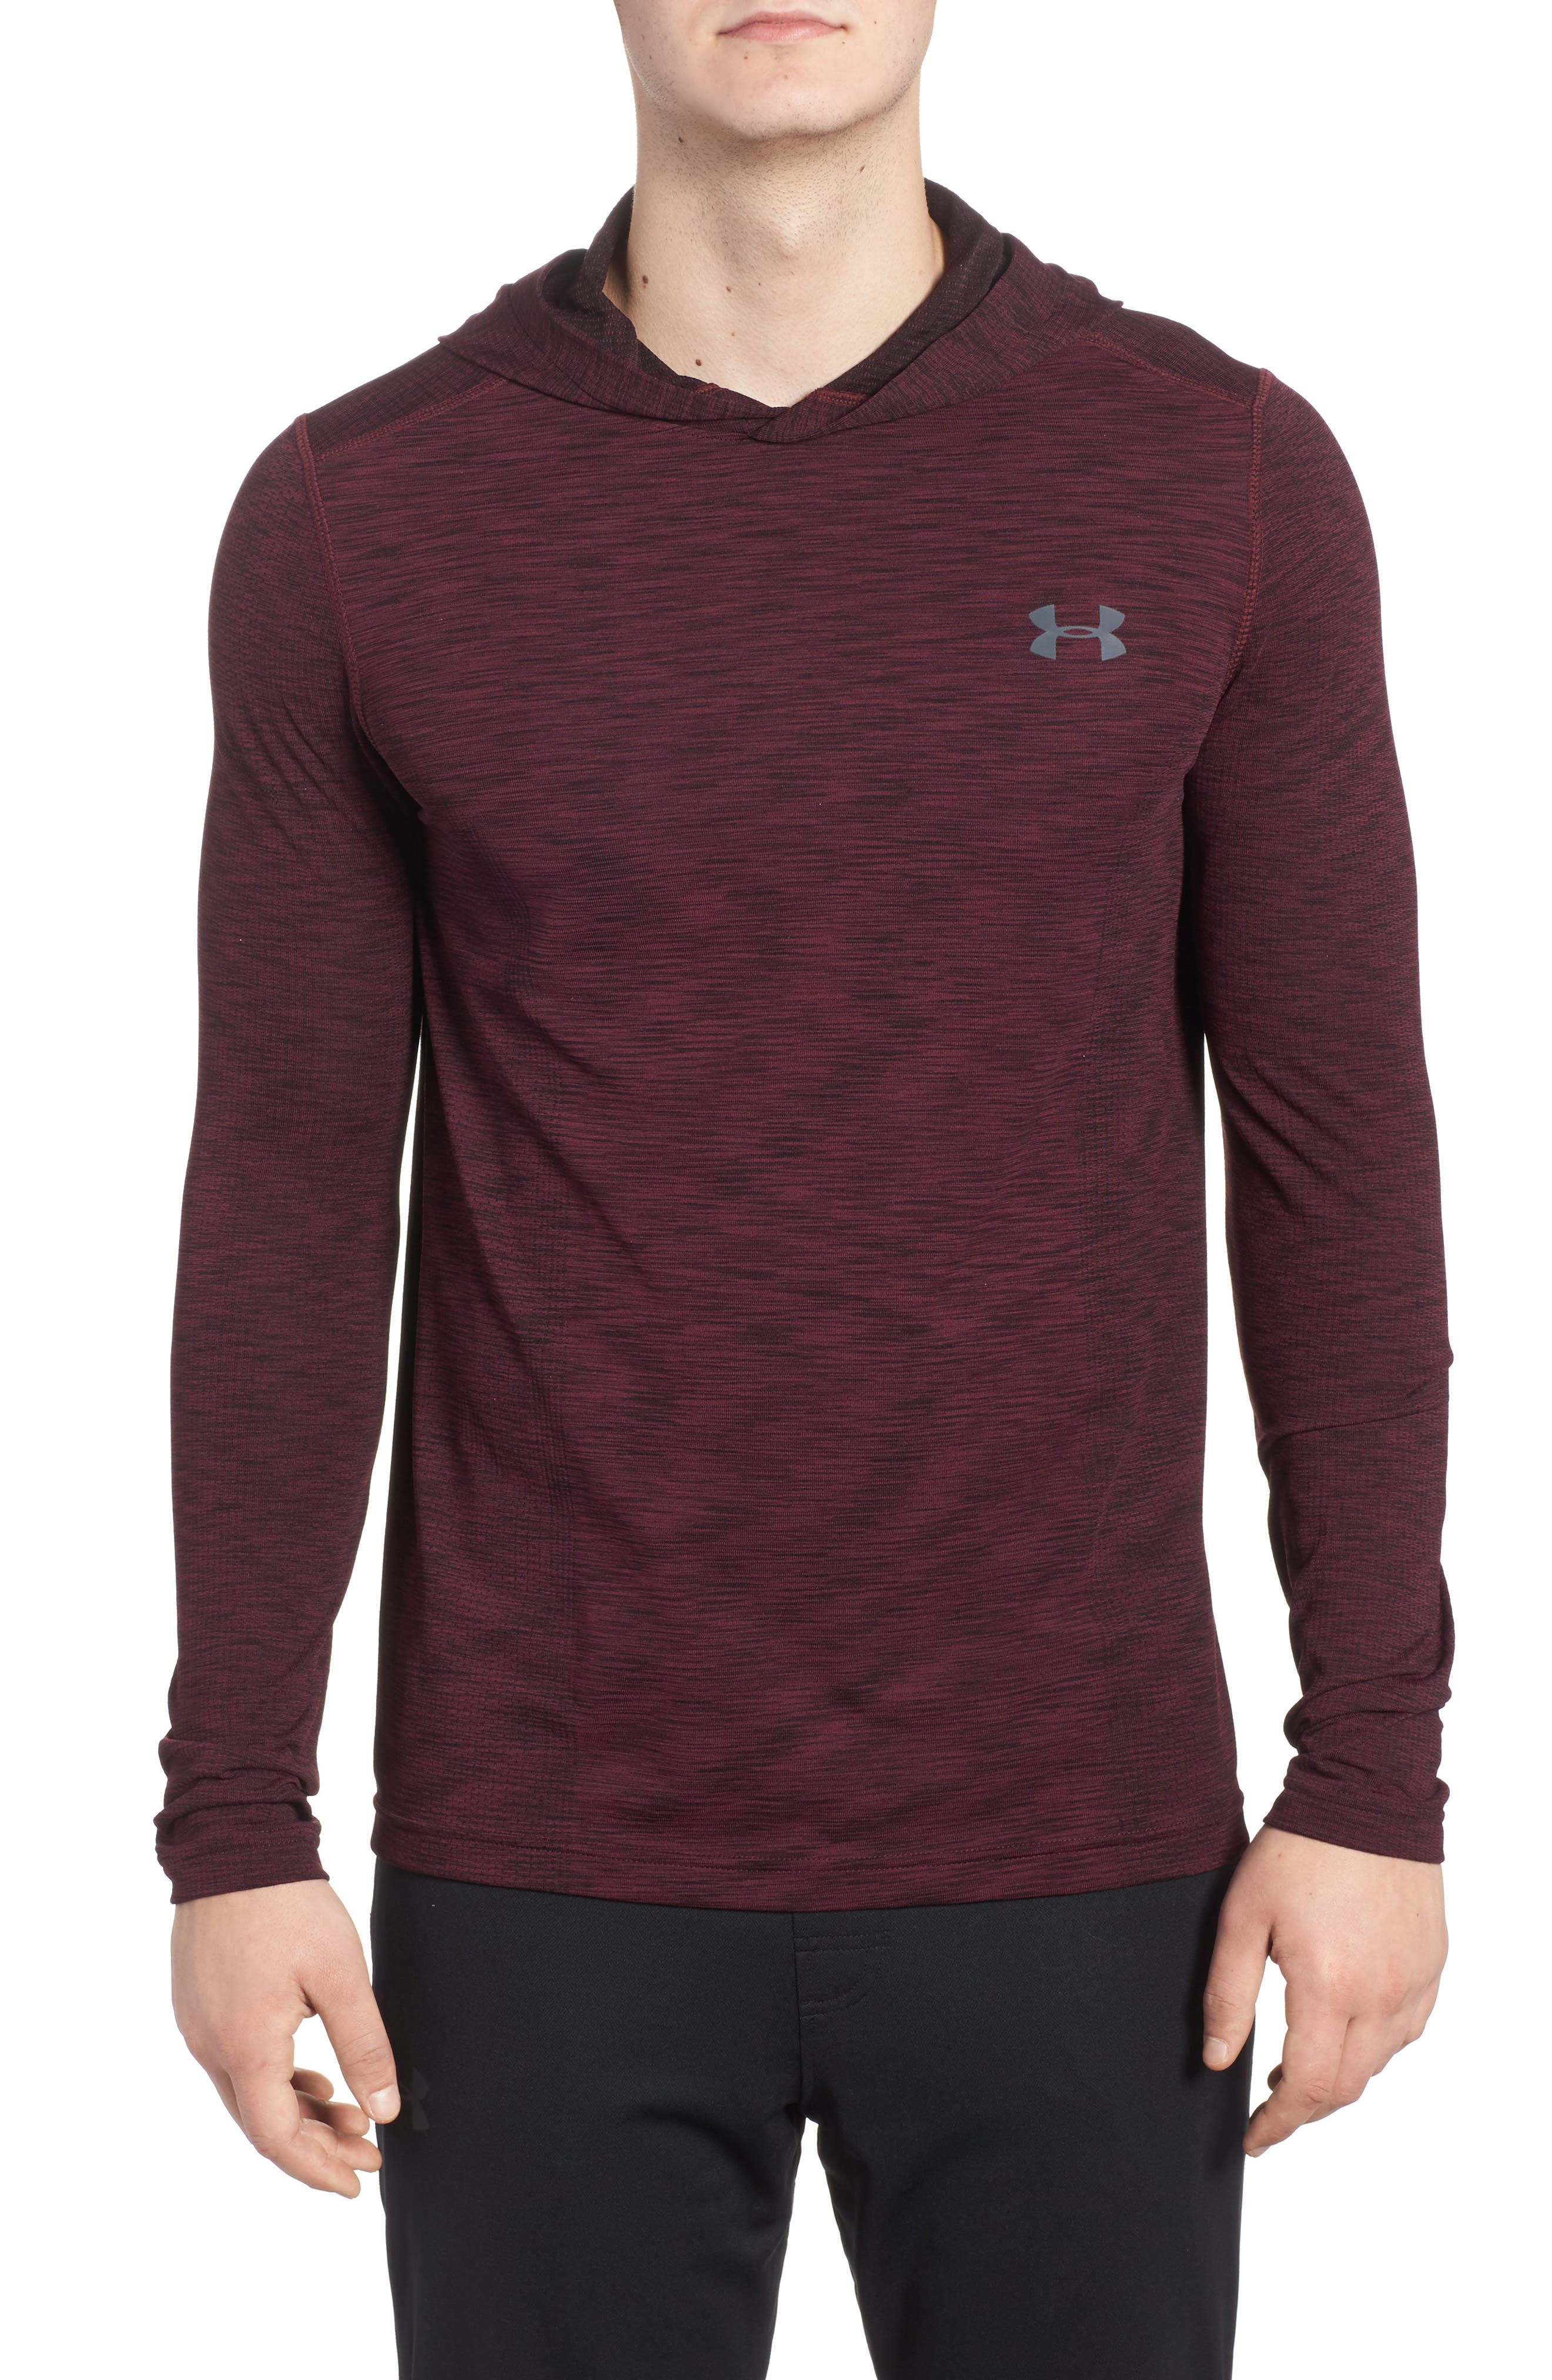 Threadbone Fitted Seamless Hoodie,                         Main,                         color, Raisin Red / Stealth Grey